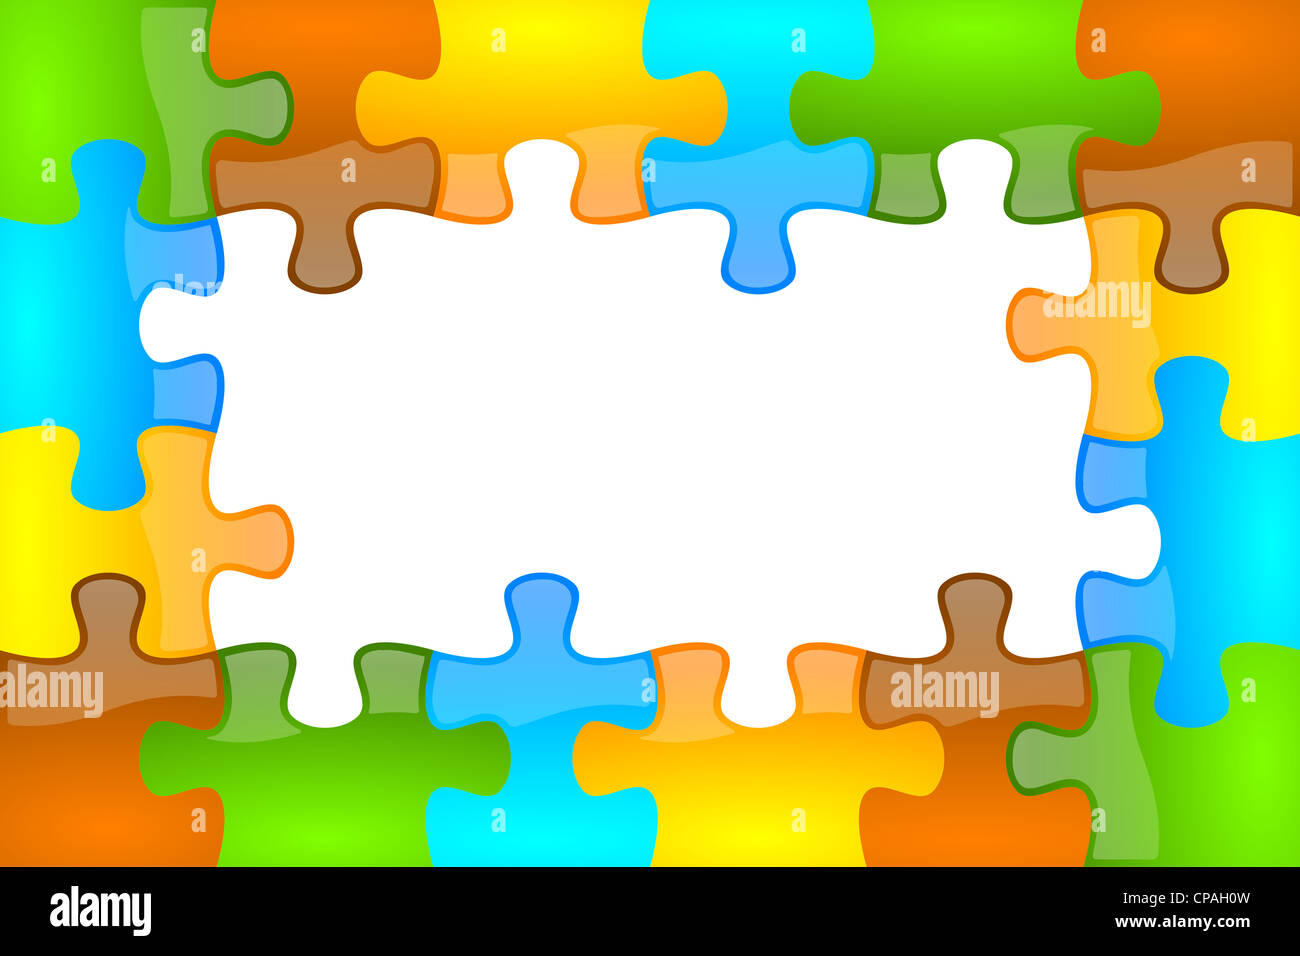 Colored and jazzy puzzle frame background 4 x 6 format Stock Photo ...